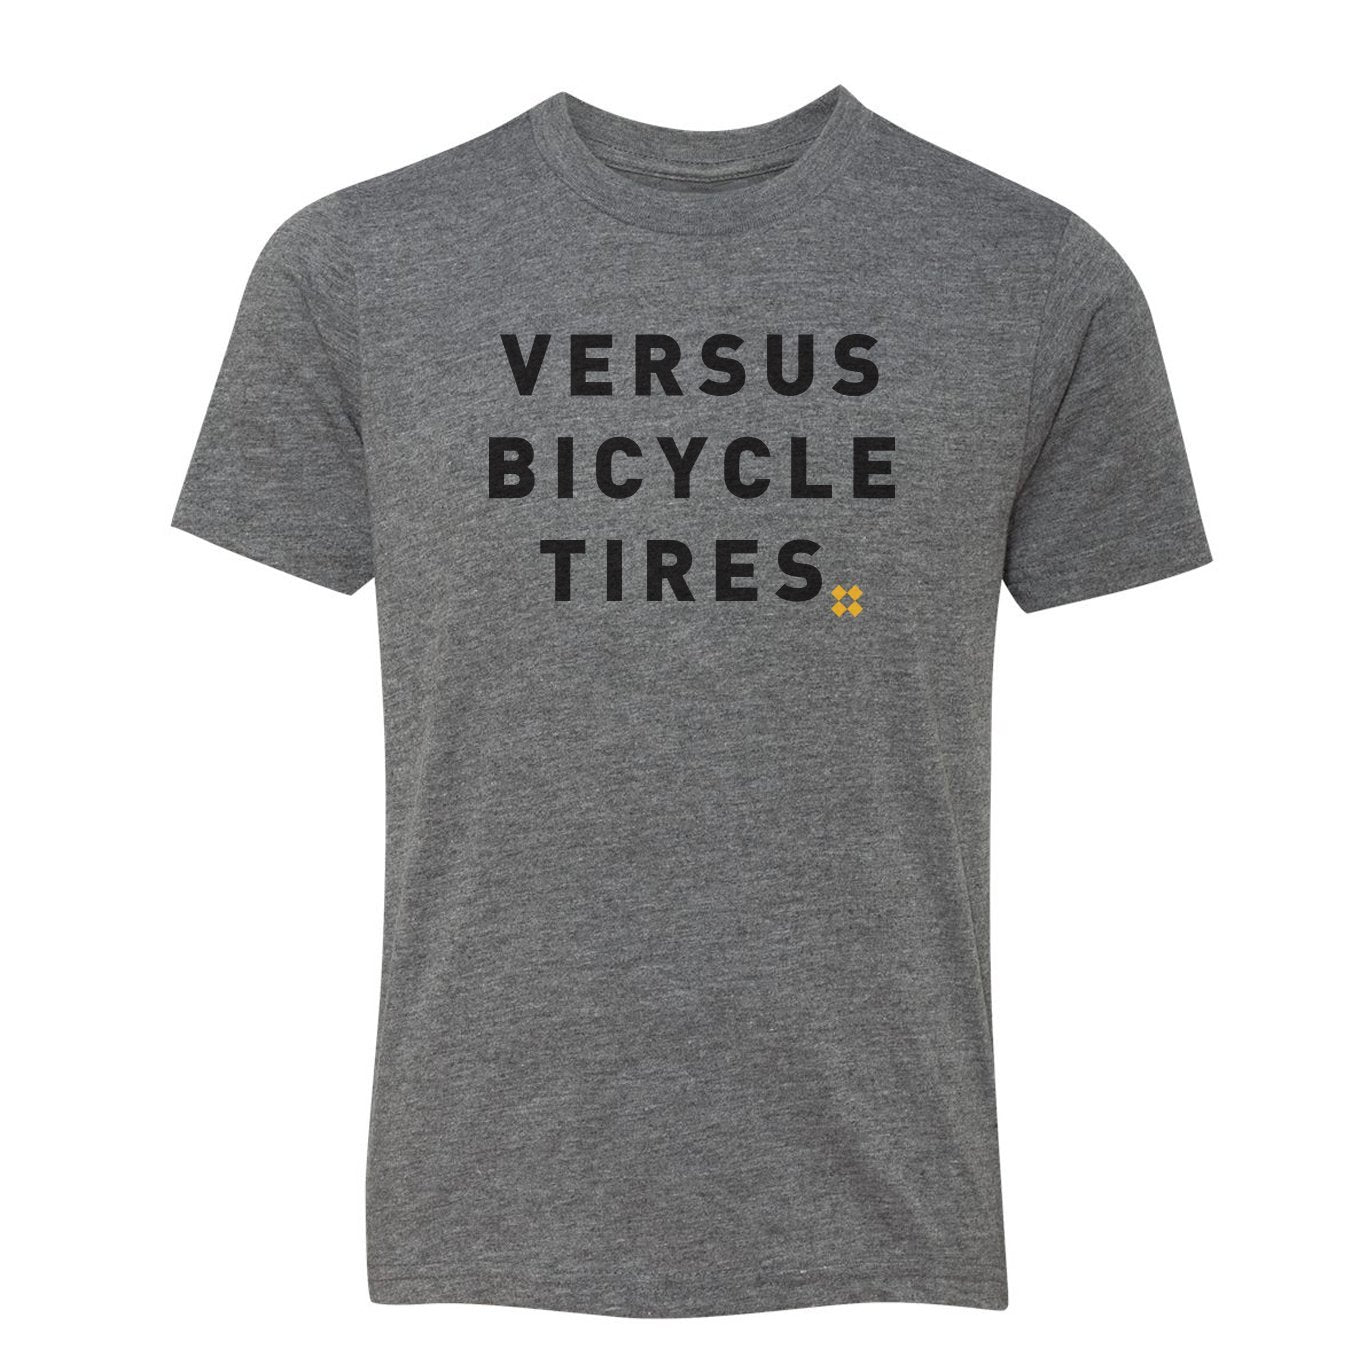 Text SS T-shirt - Versus Tires